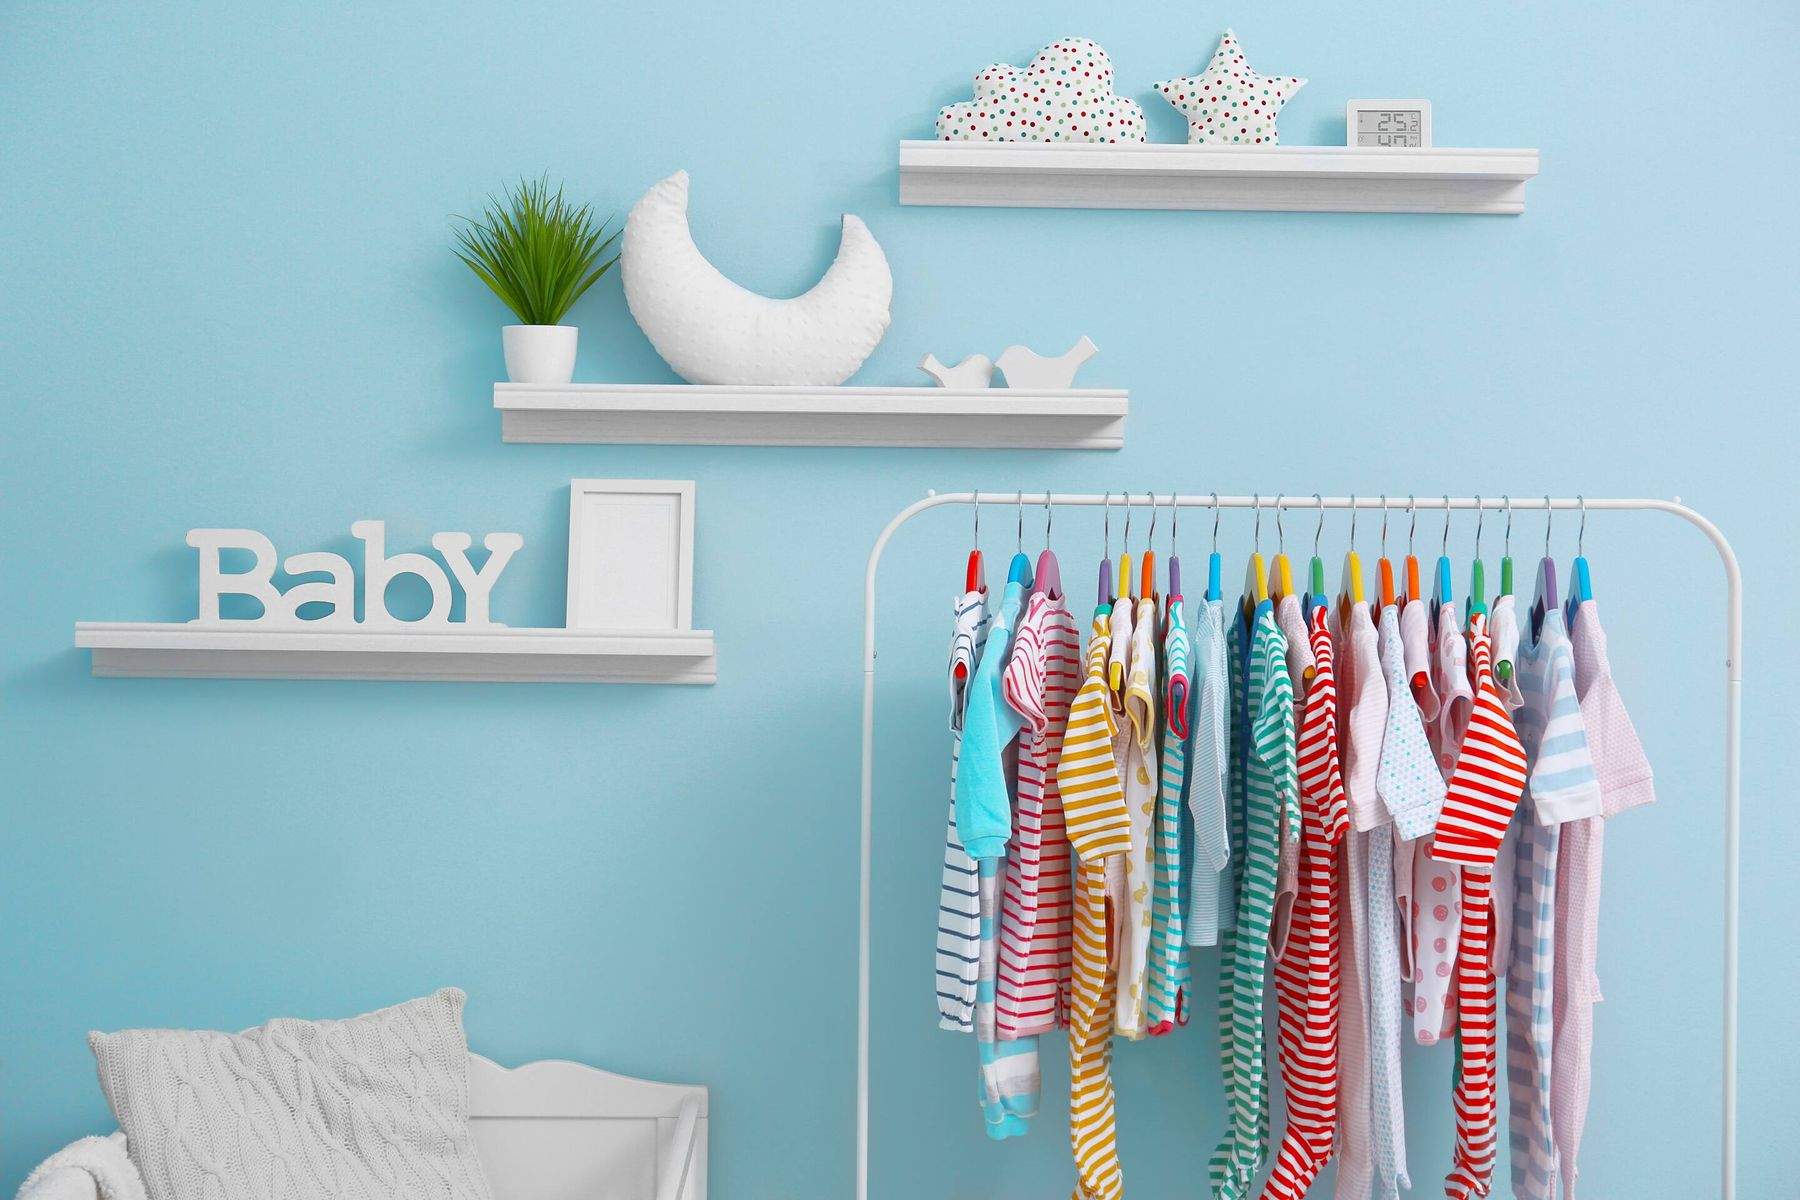 Looking for a Gentle Detergent for Your Baby's Clothes? Try This DIY